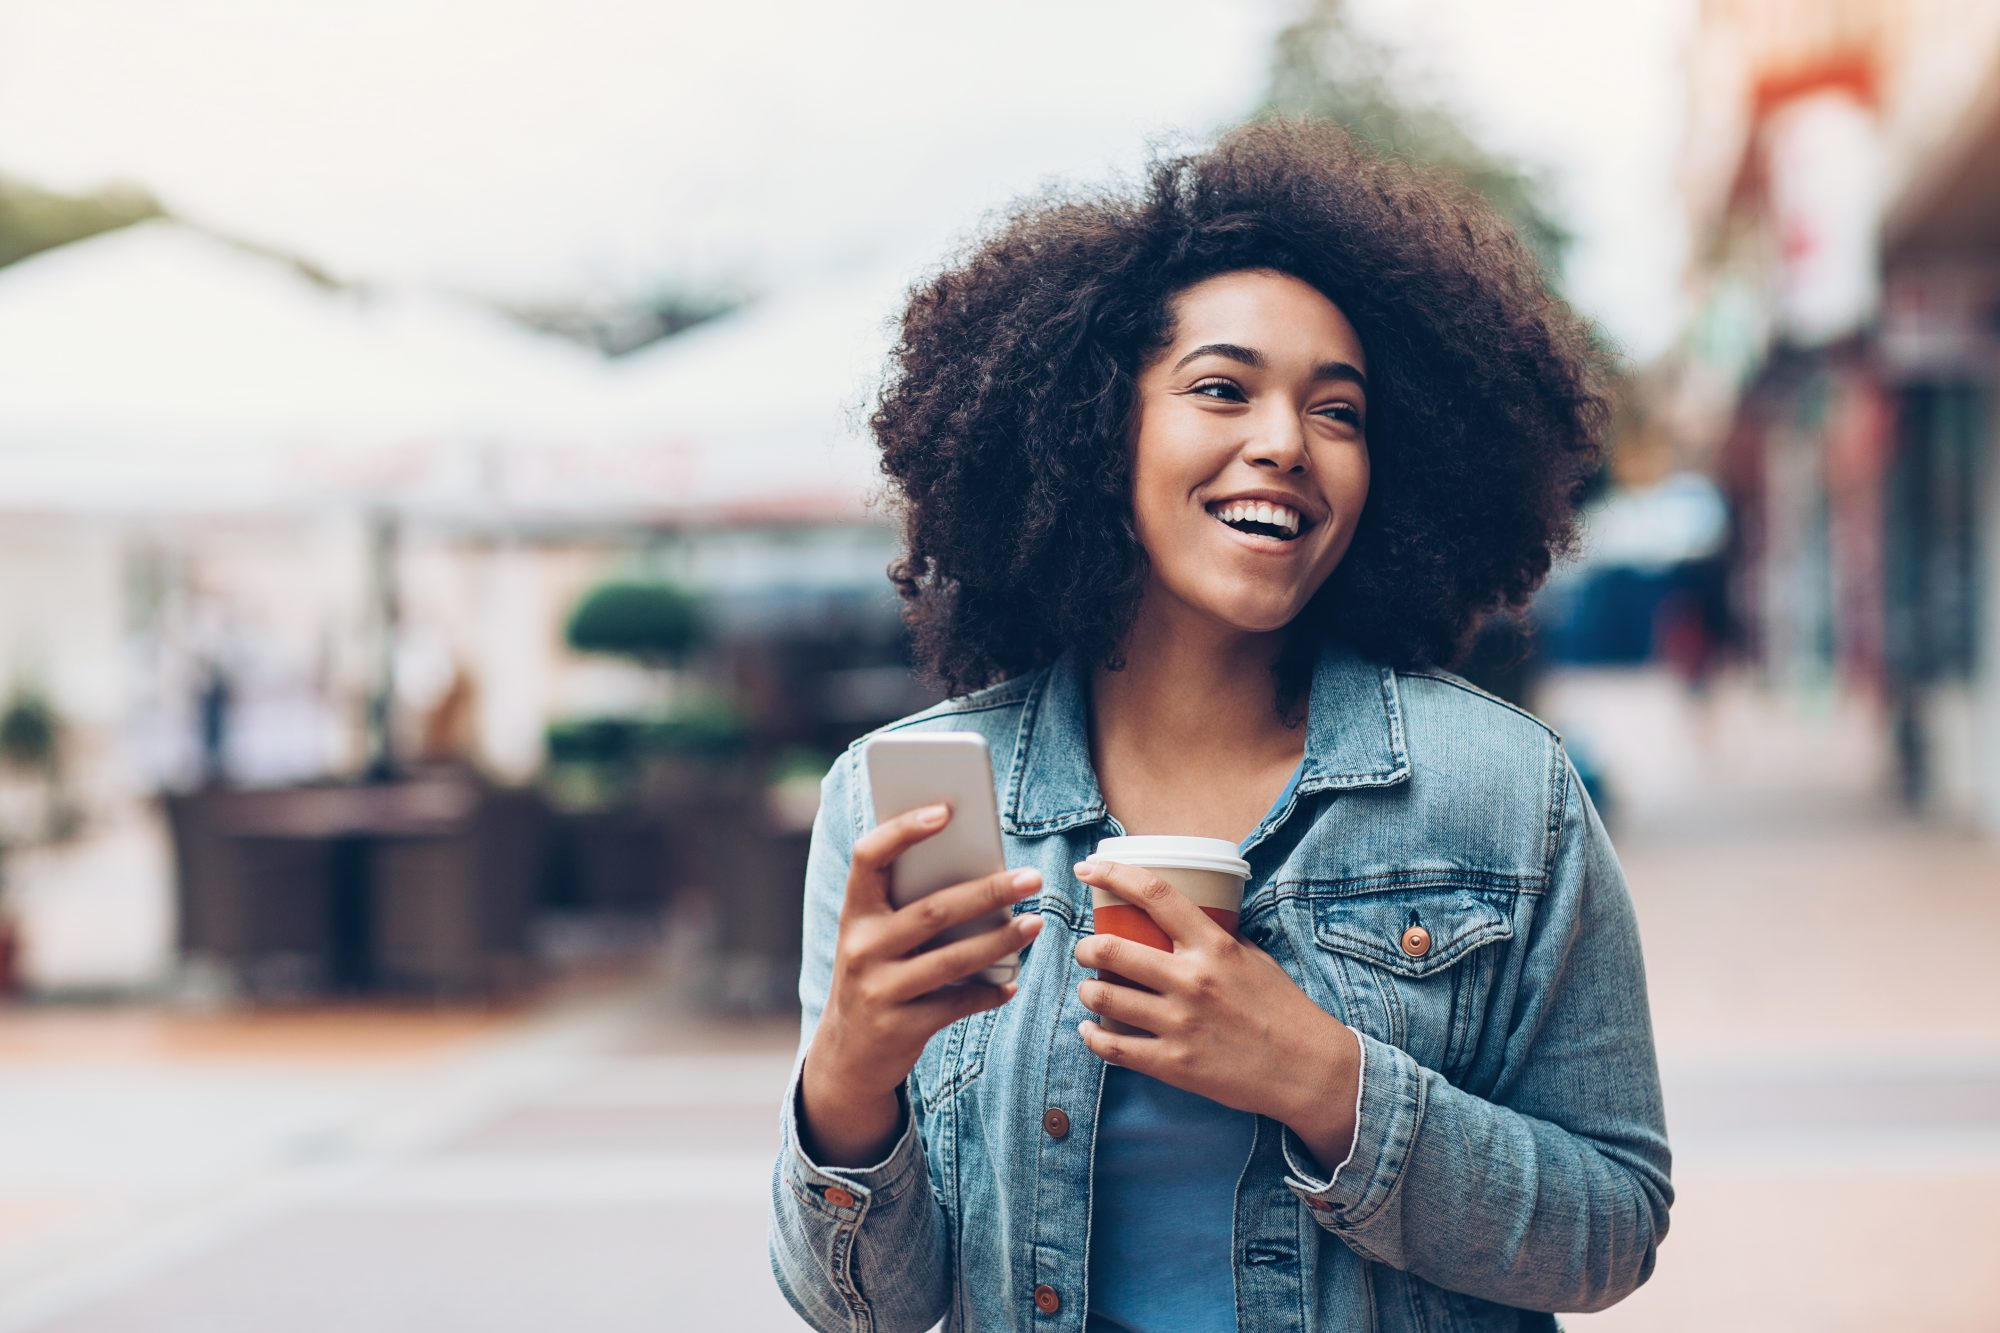 Young woman smiling with coffee and cellphone in her hand.